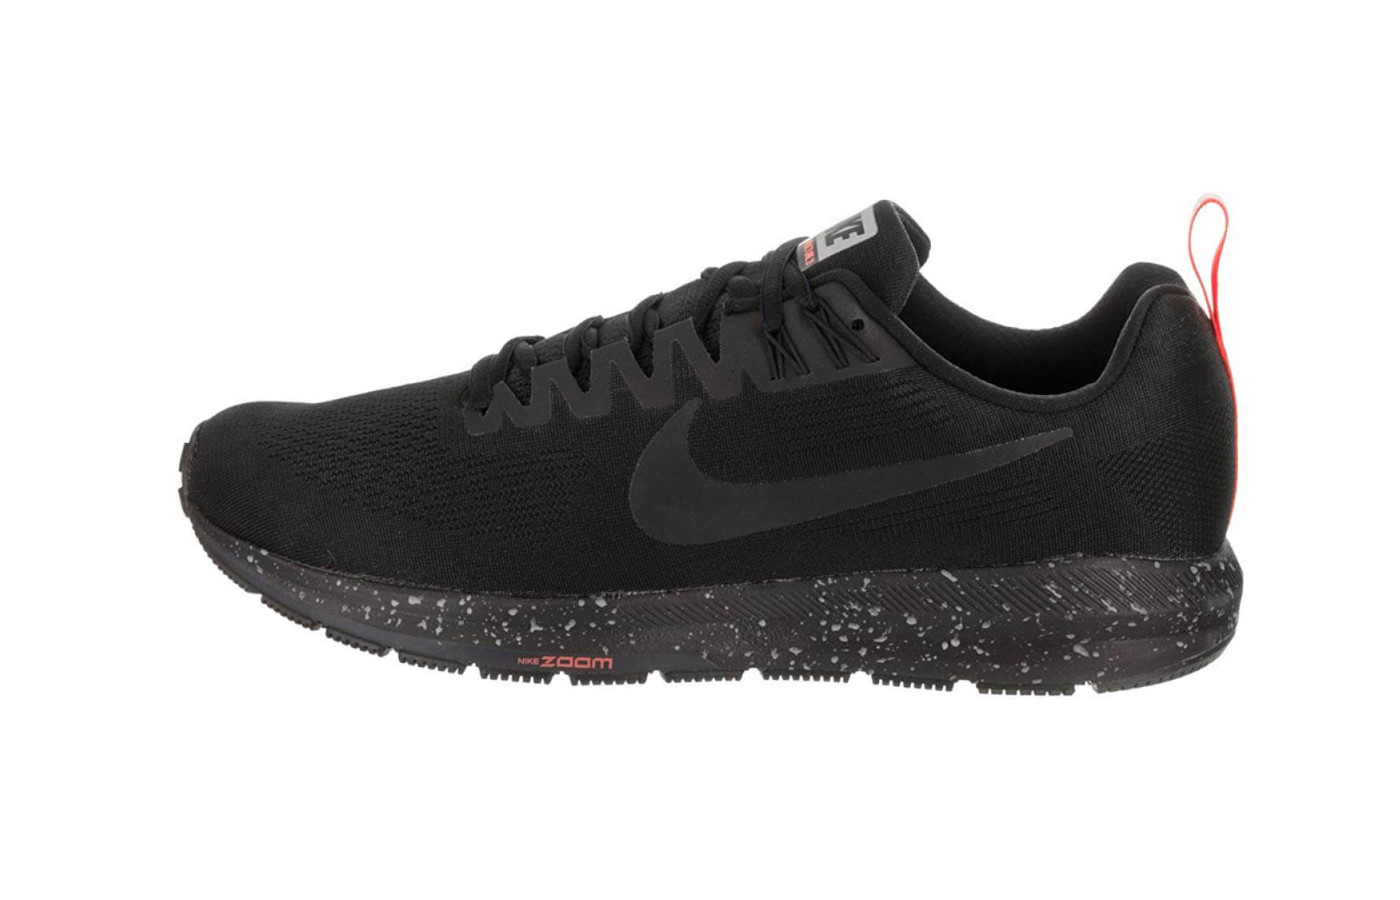 Nike Air Zoom Structure 21 Shield is water repellant